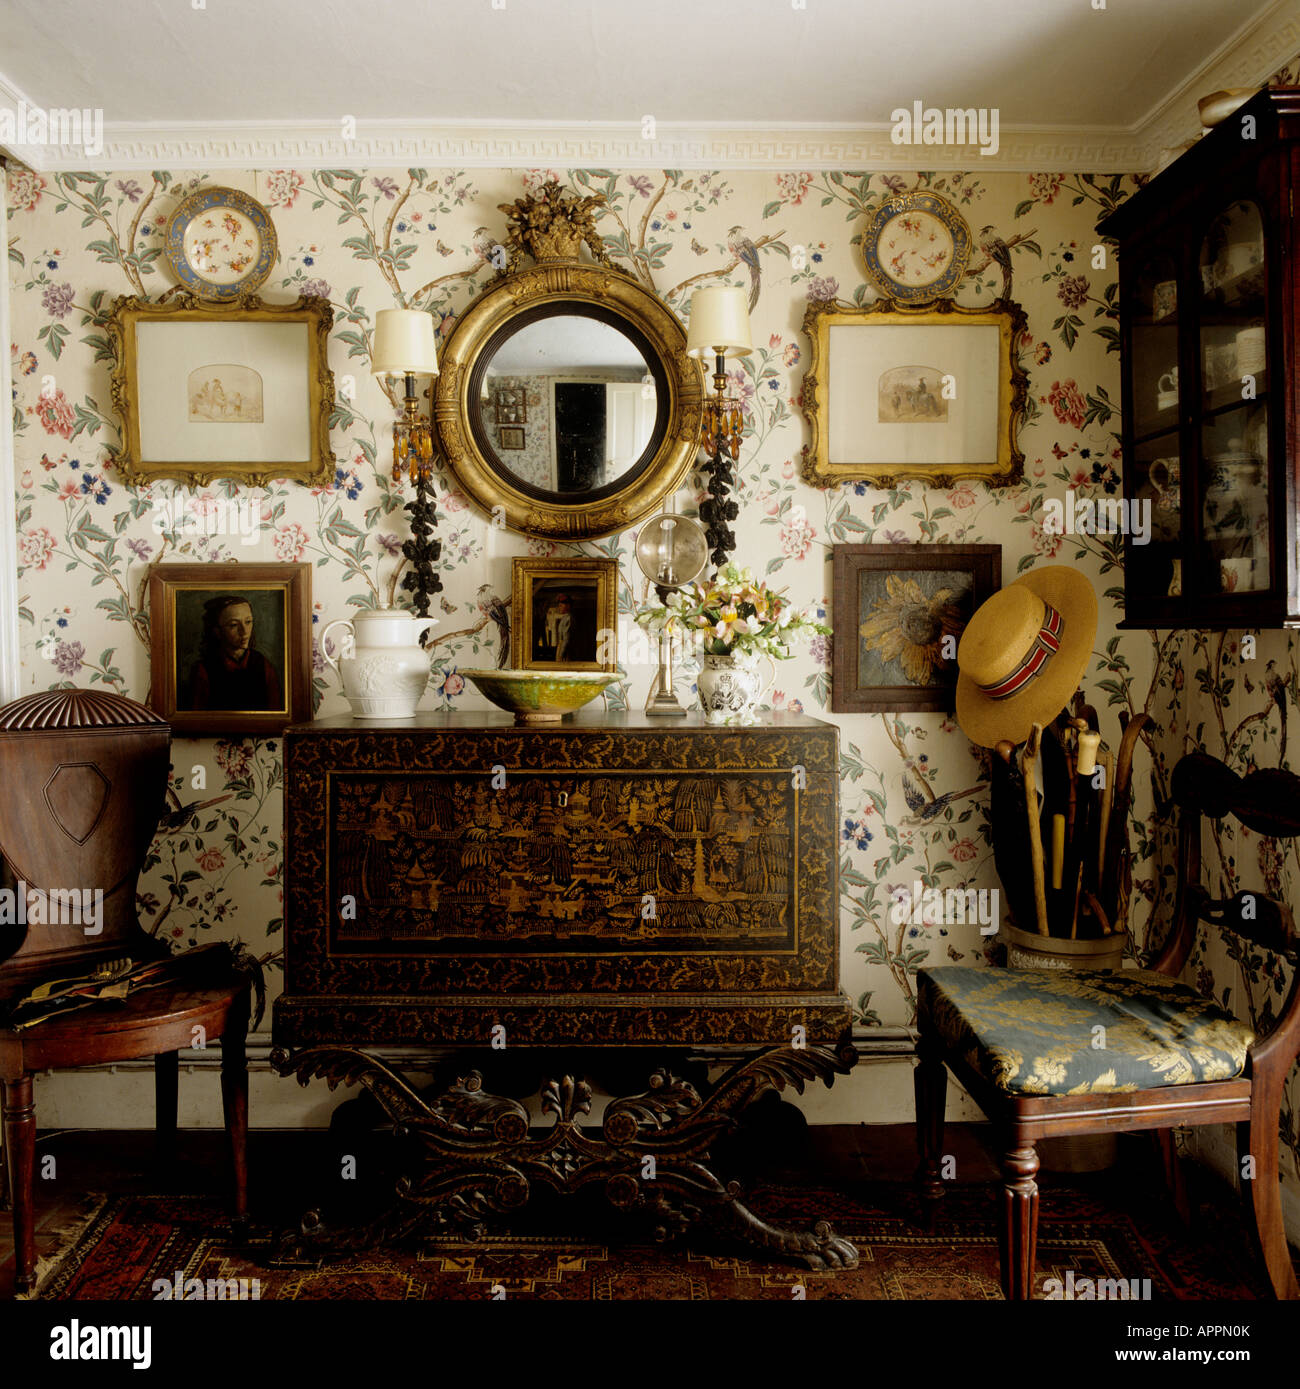 English Cottage Interior High Resolution Stock Photography And Images Alamy